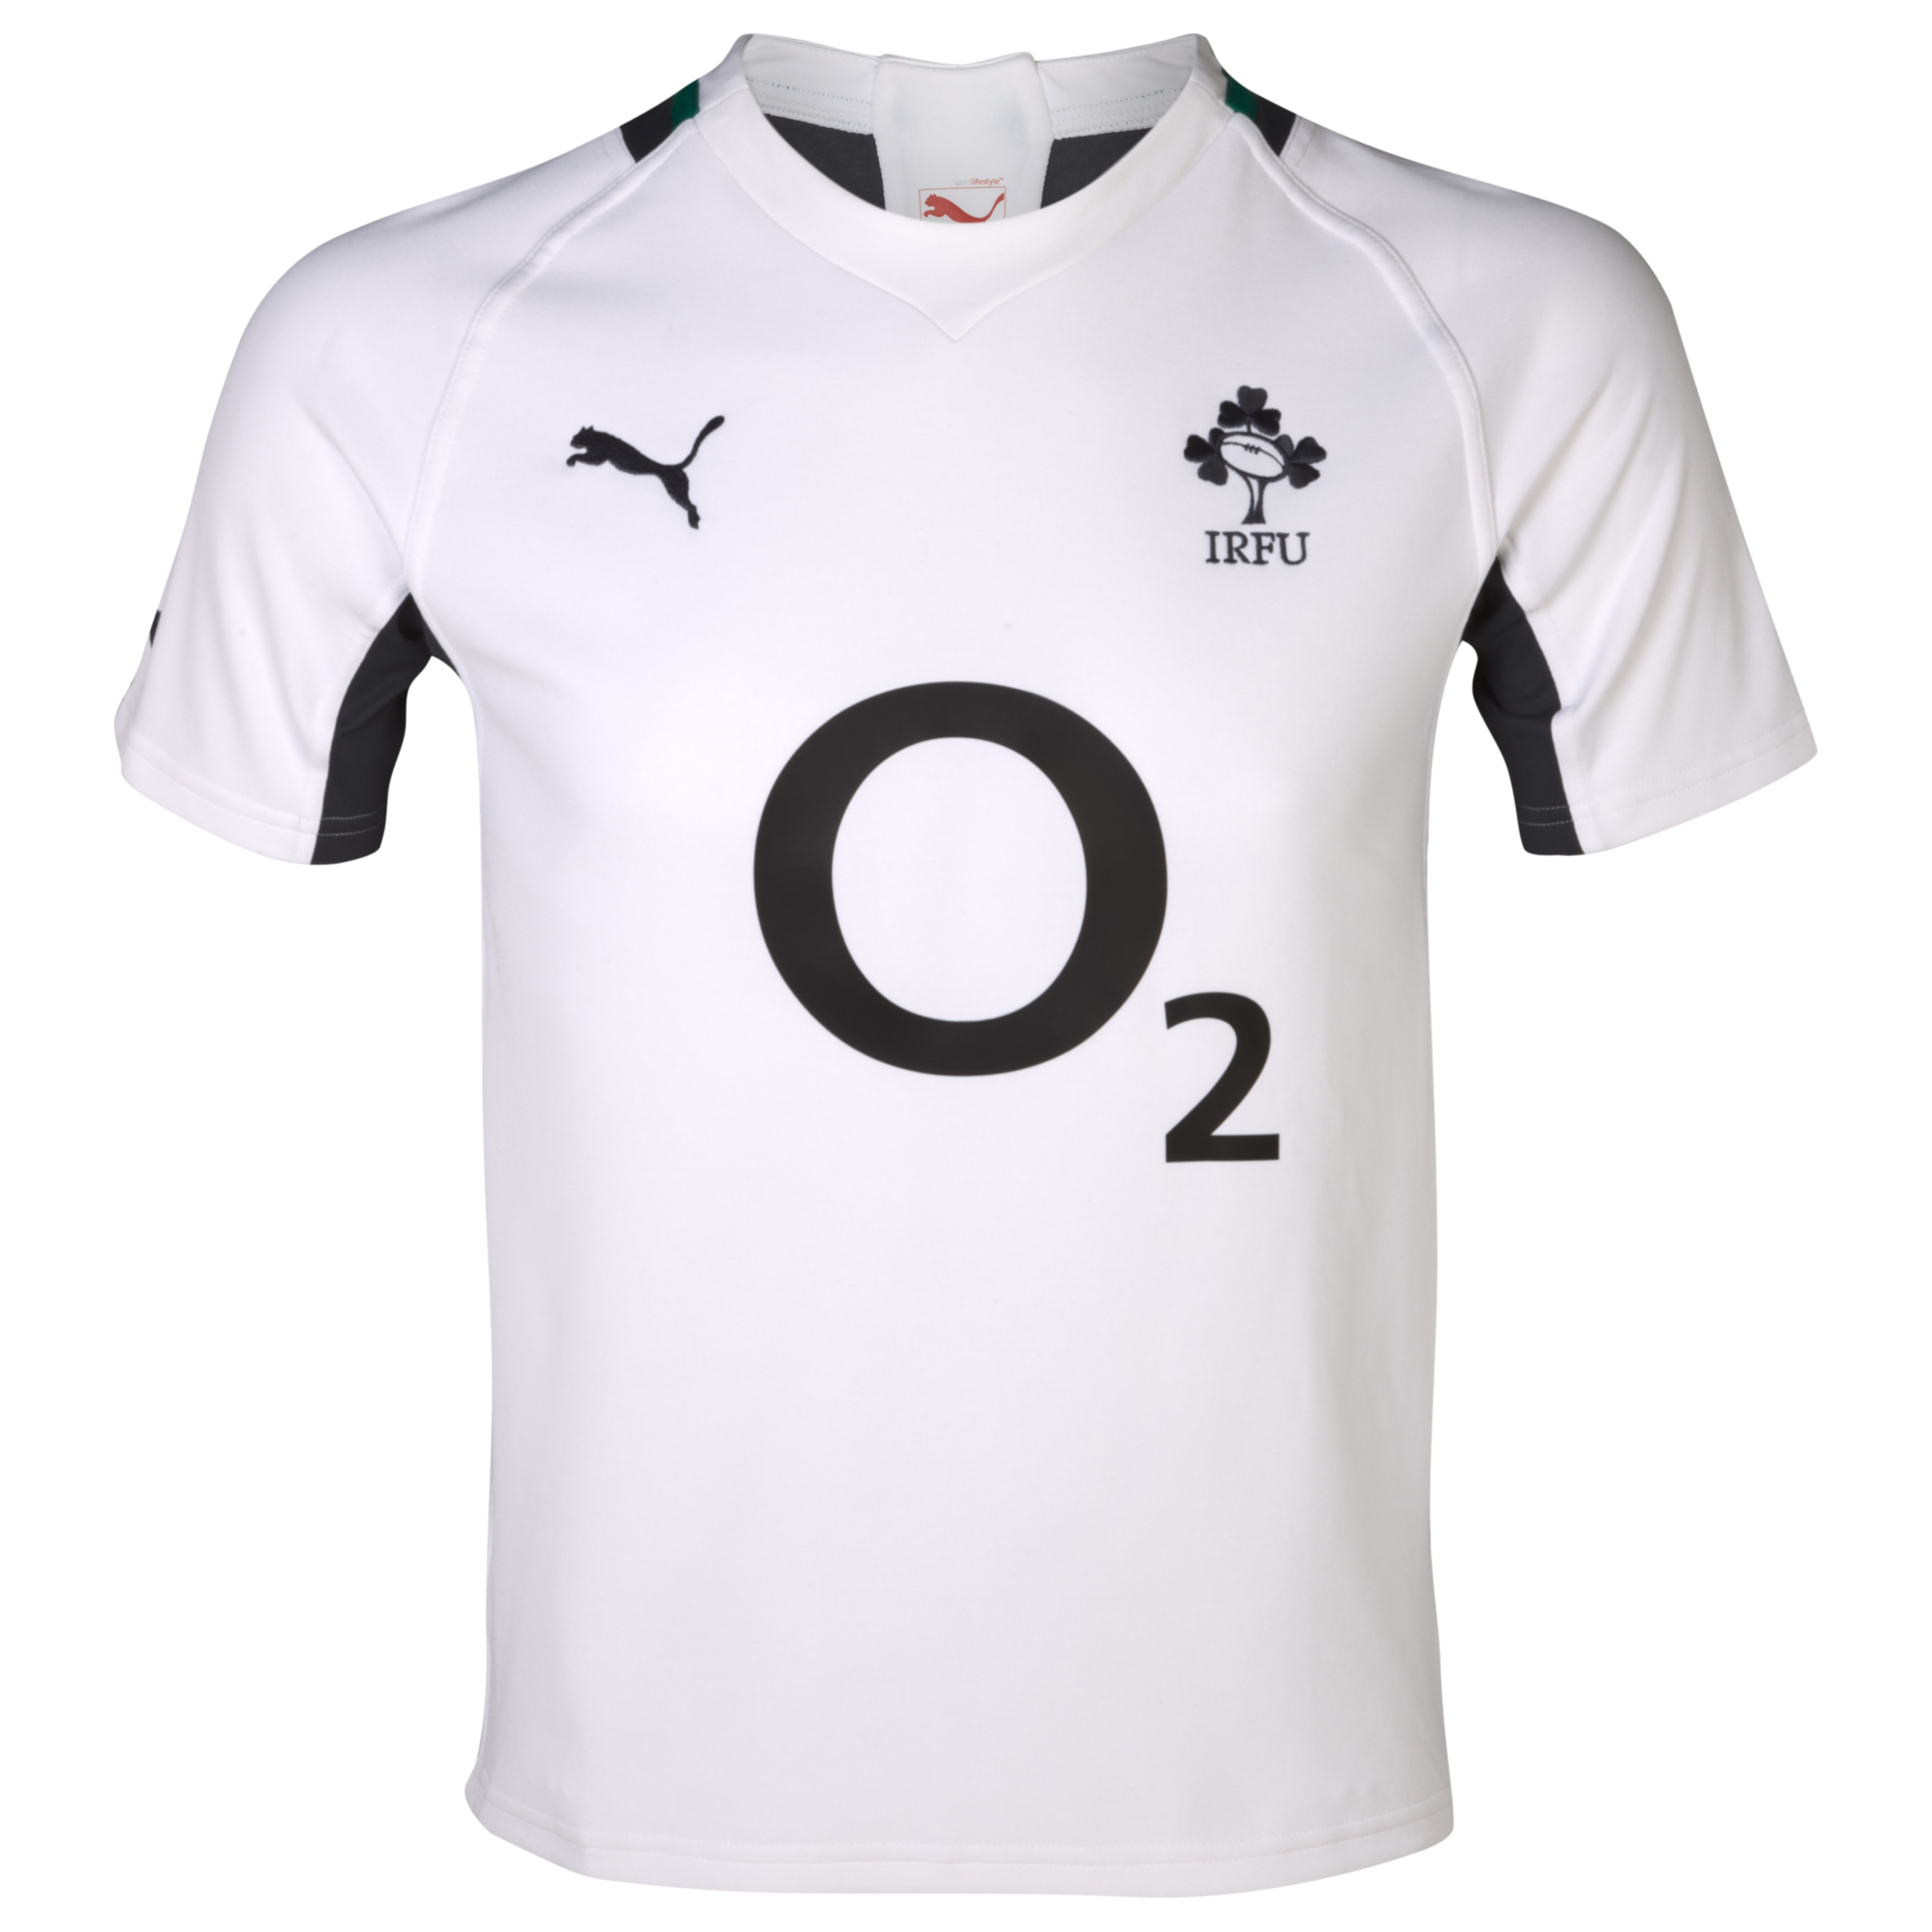 Ireland Rugby Training Jersey - White/Ebony